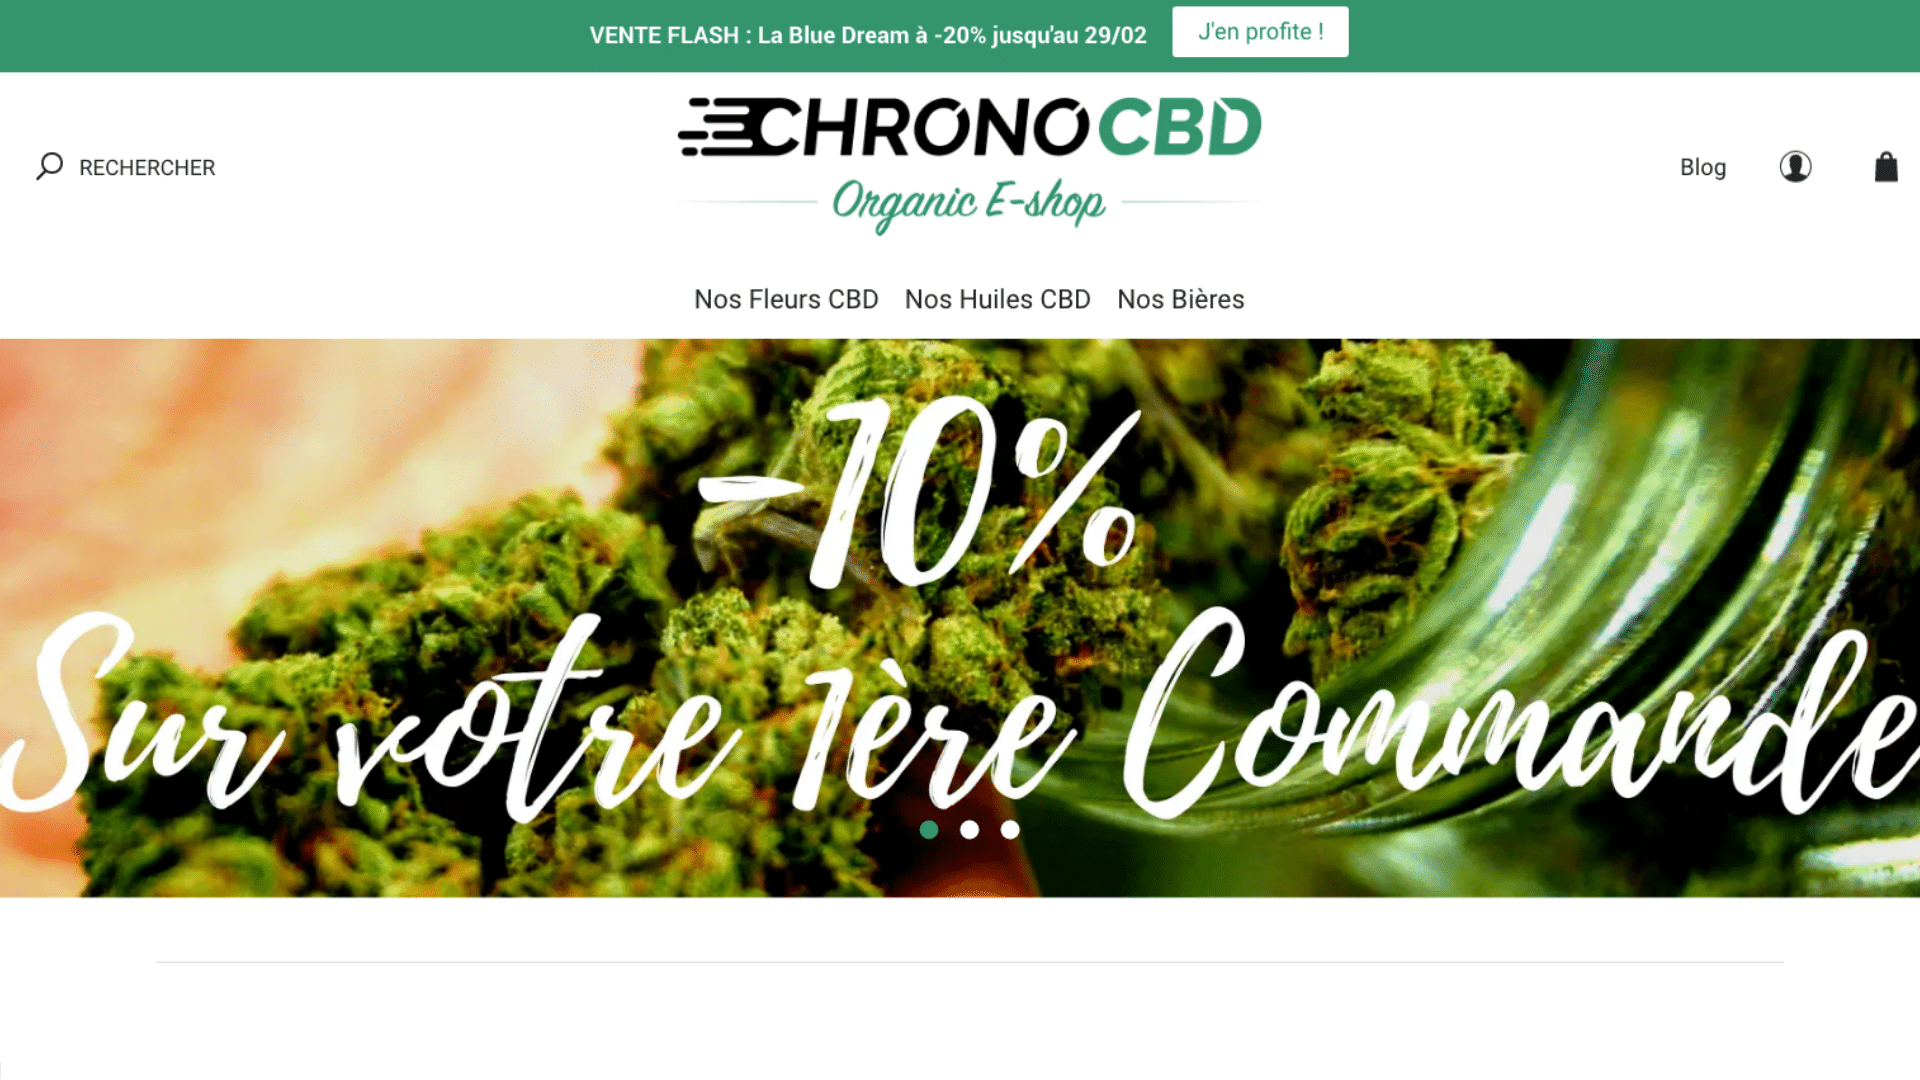 chrono cbd cannabis légal